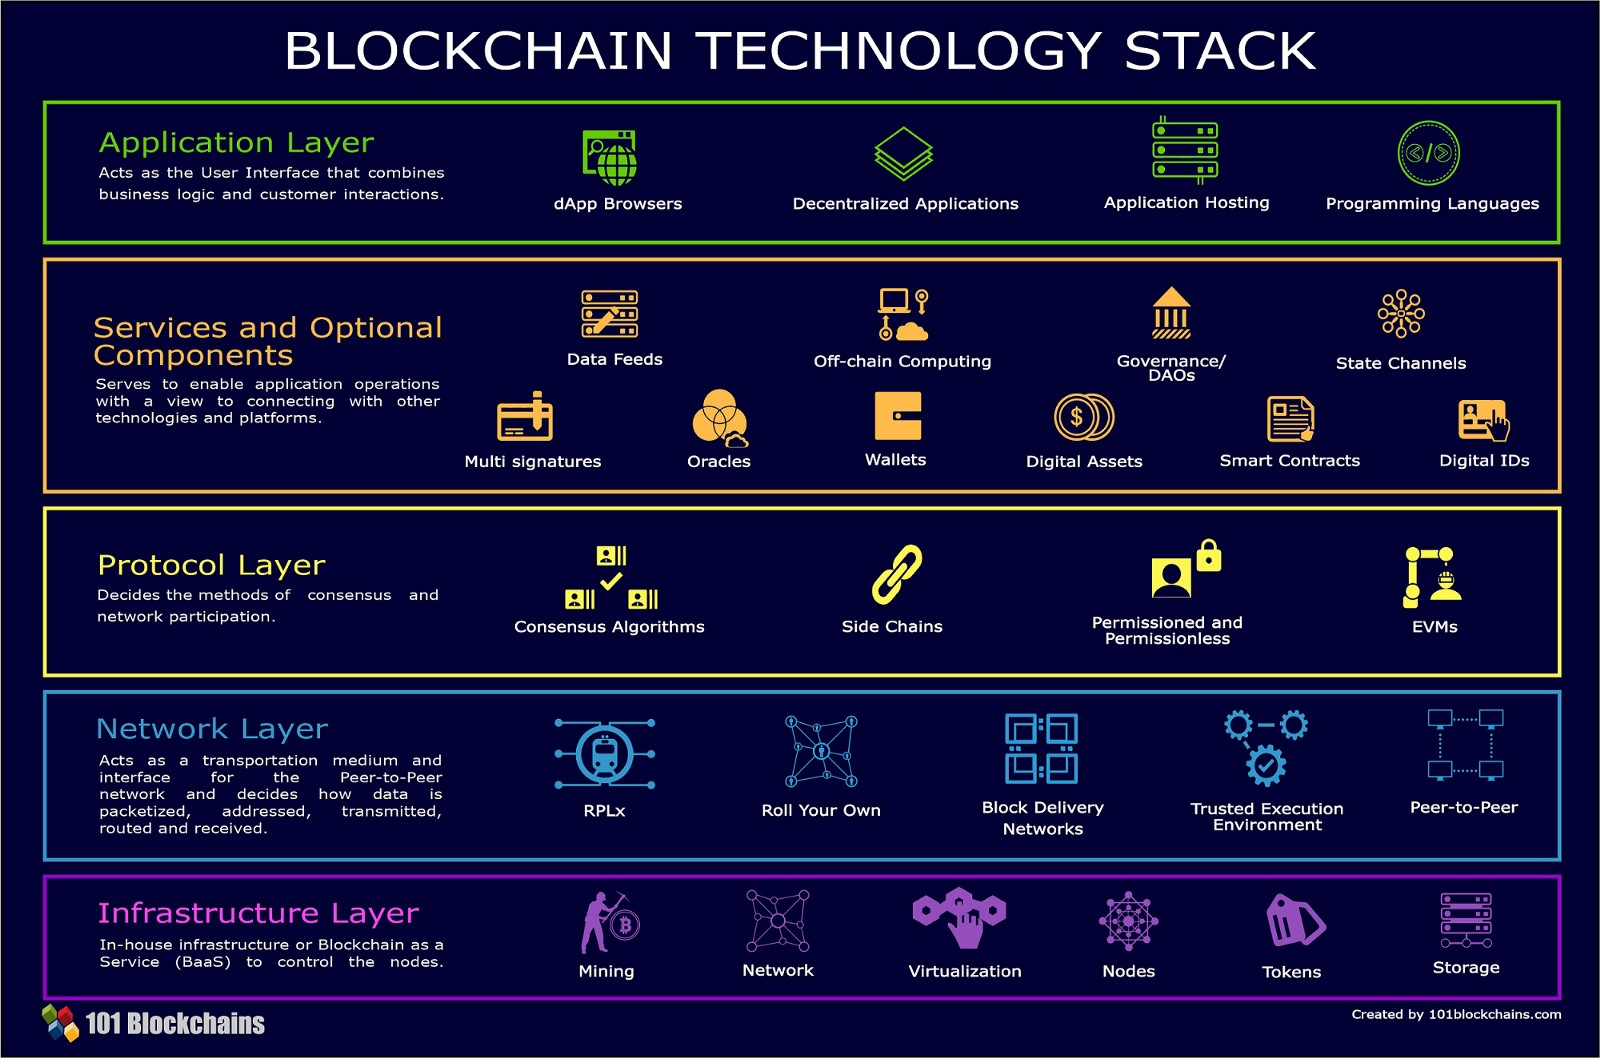 Web 3.0 Will Be Powered by Blockchain Technology Stack